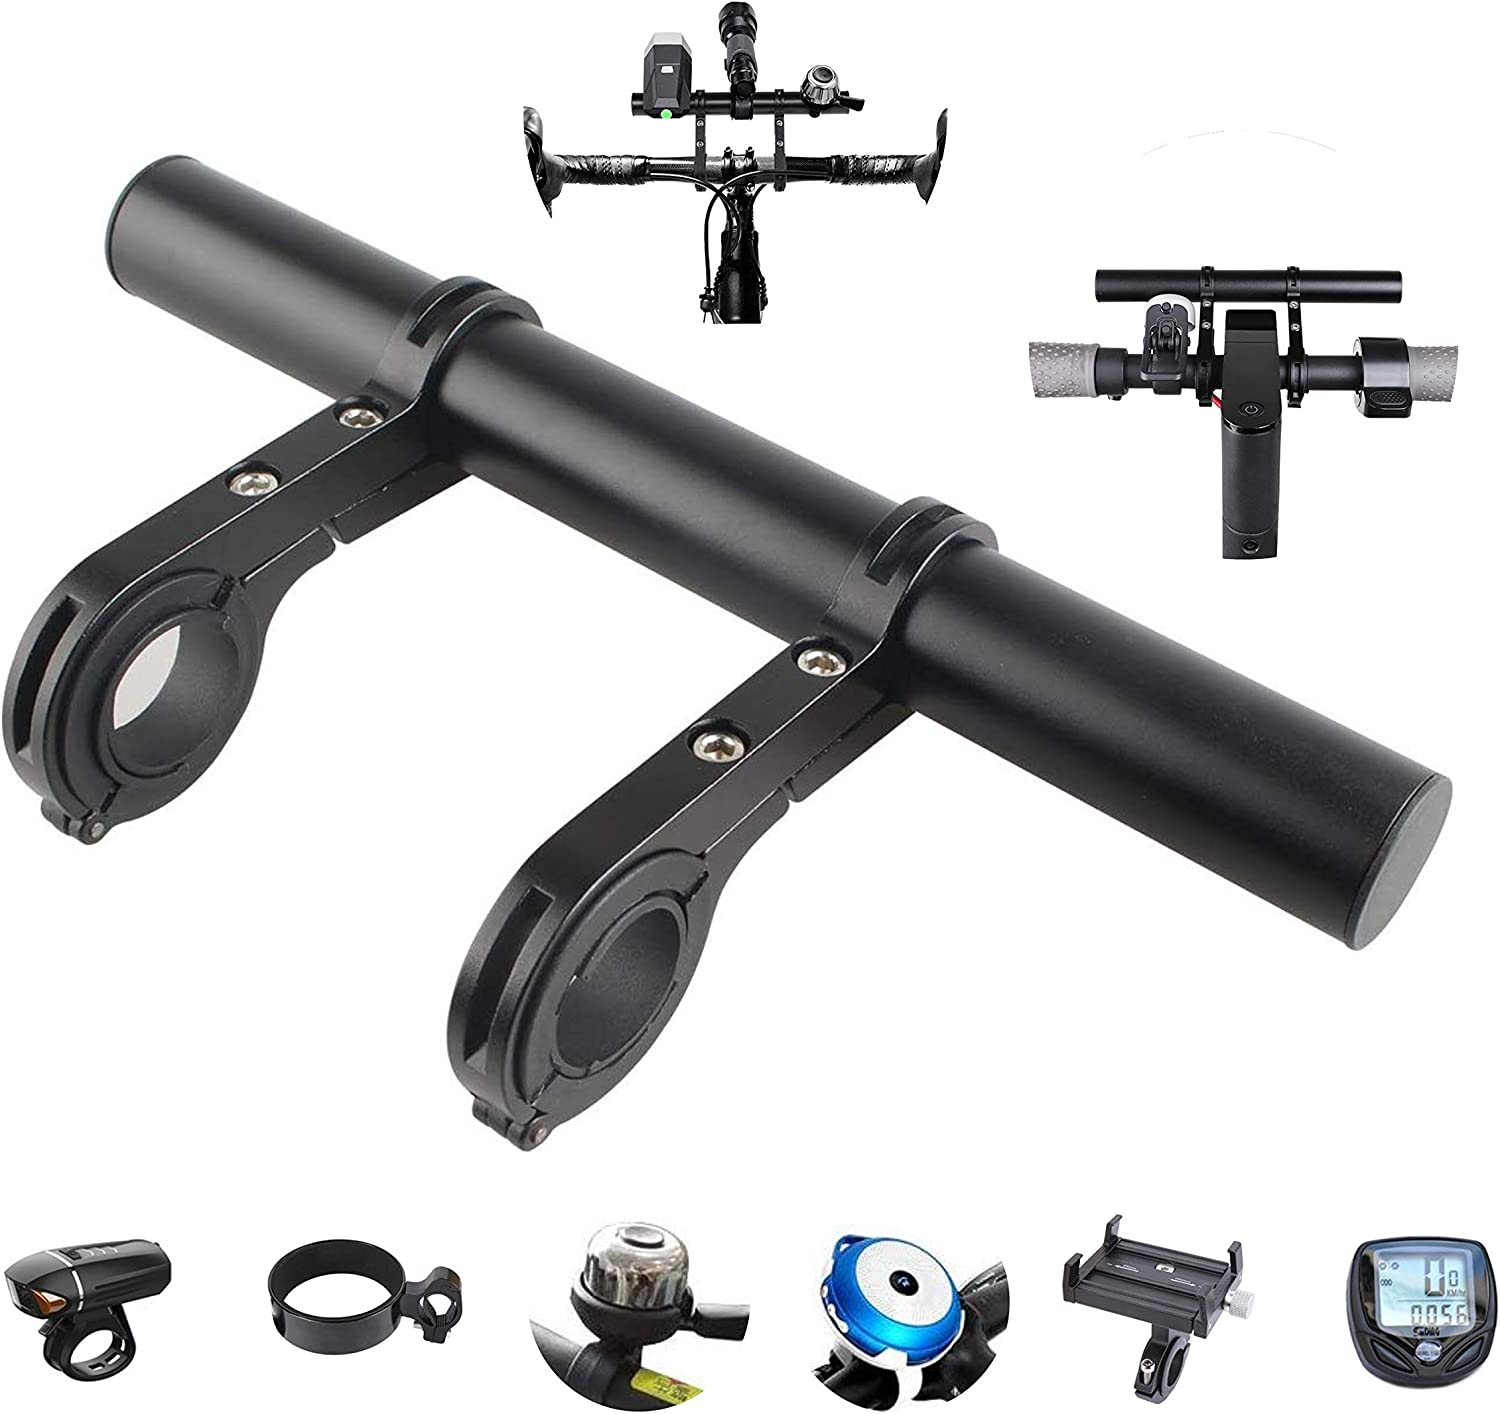 Tinke All items free shipping Handlebar Extender Bicycle Bracket Alloy Time sale Aluminum Extensio